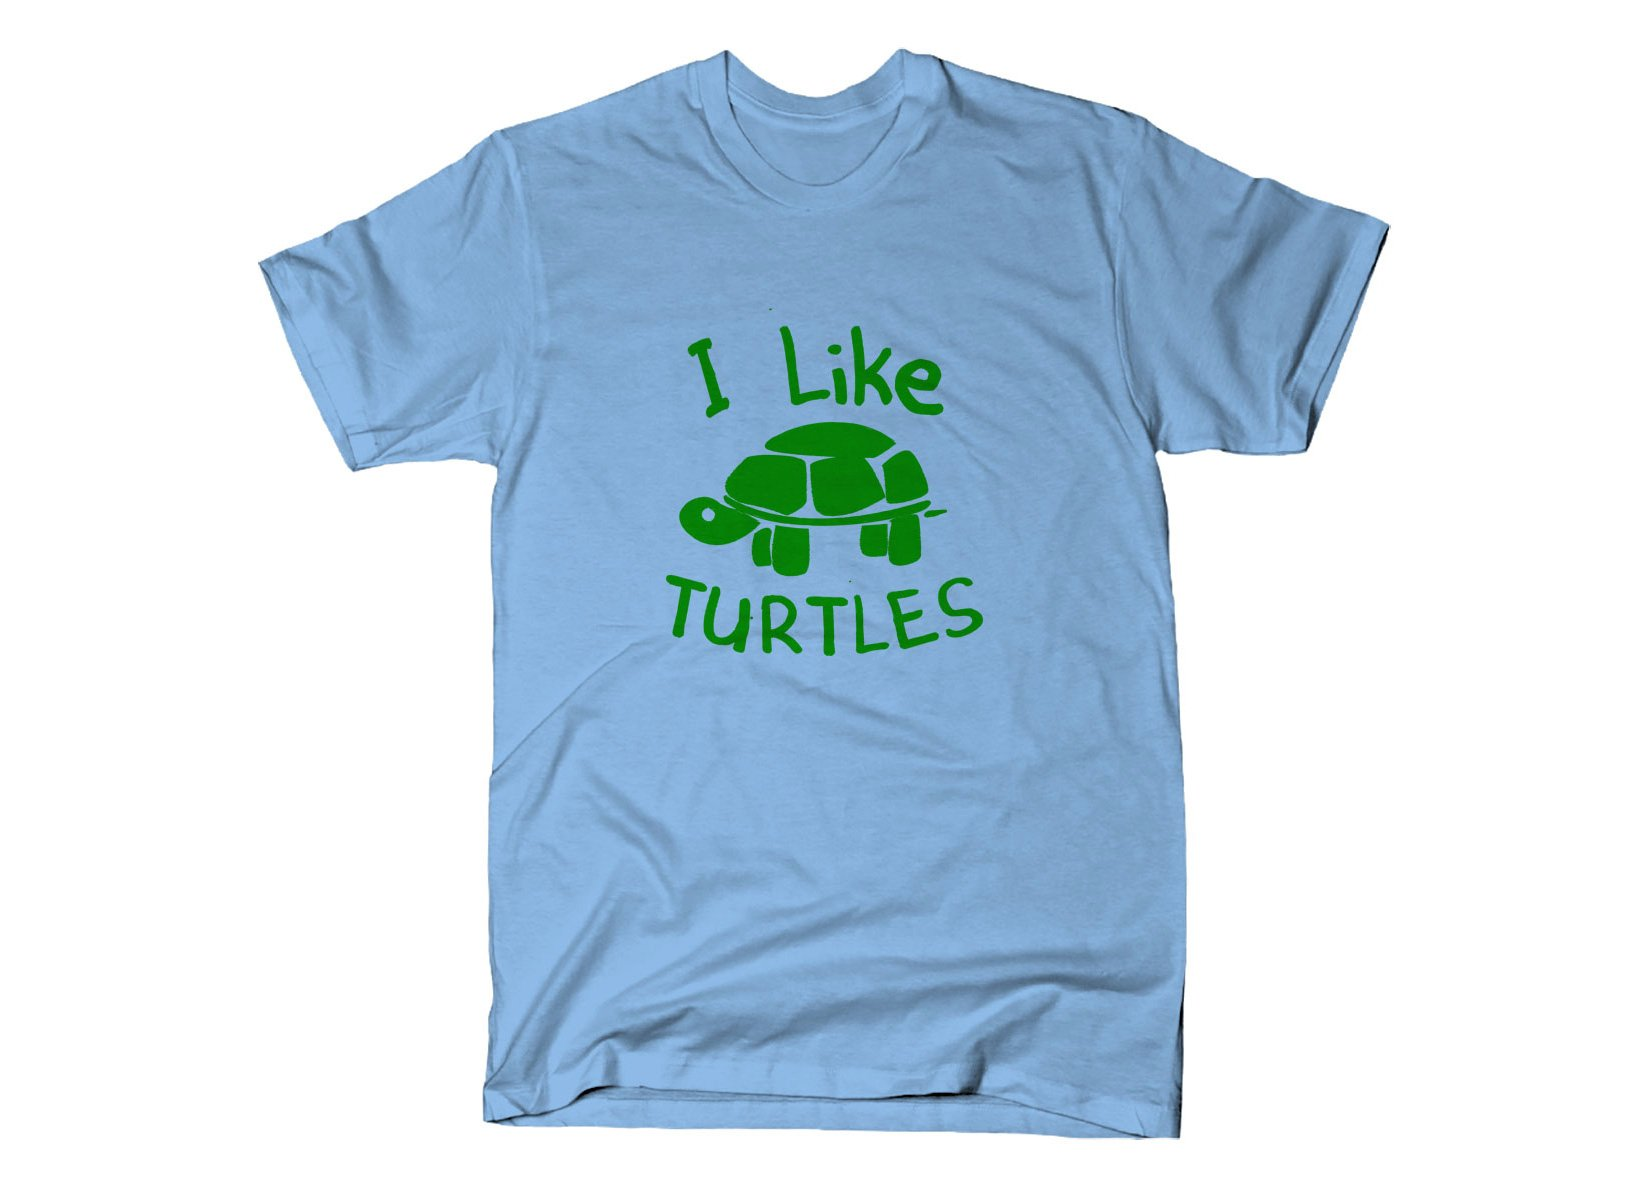 9a1d66457 I Like Turtles. I Like Turtles. Select to zoom artwork